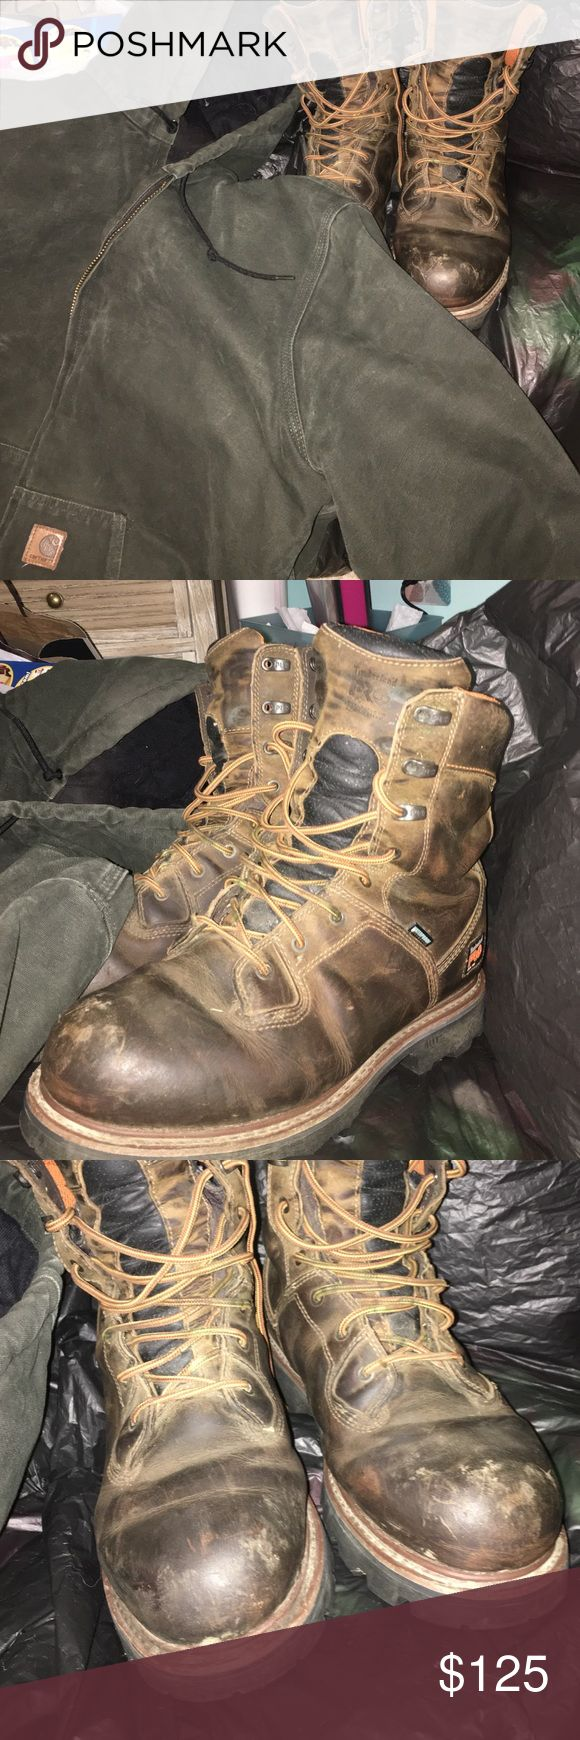 Bundle -Men's Carhartt jacket and Timberland Boots XL Tall -> Carhartt Jacket. Size 12 Wide waterproof work boots. A few scuffs on top of boots. Selling as a bundle for 125 bucks. Great deal. Carhartt Shoes Boots